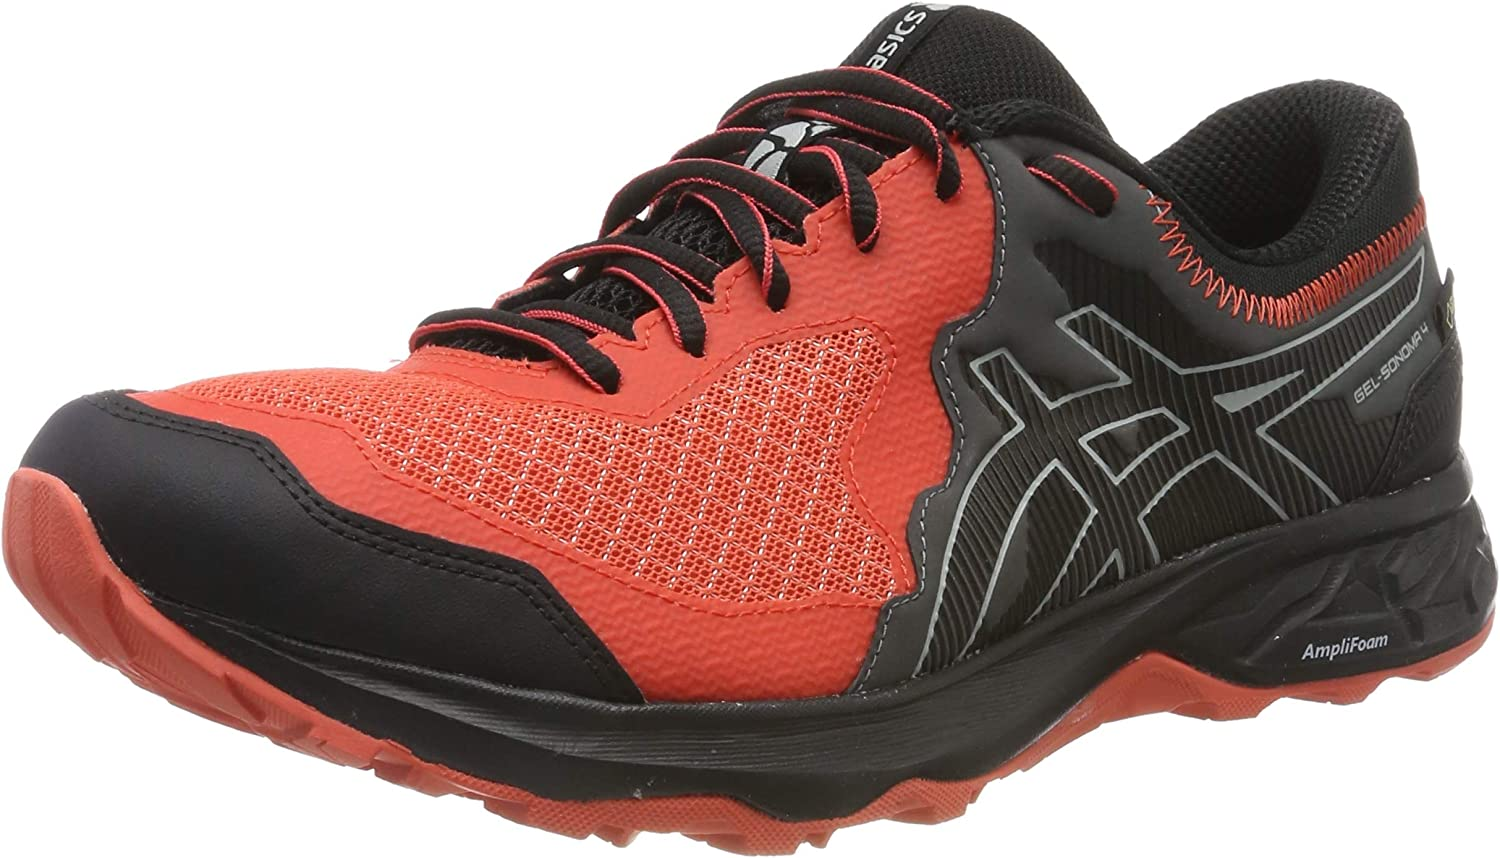 ASICS Men's's Gel-sonoma 4 G-tx Running shoes,